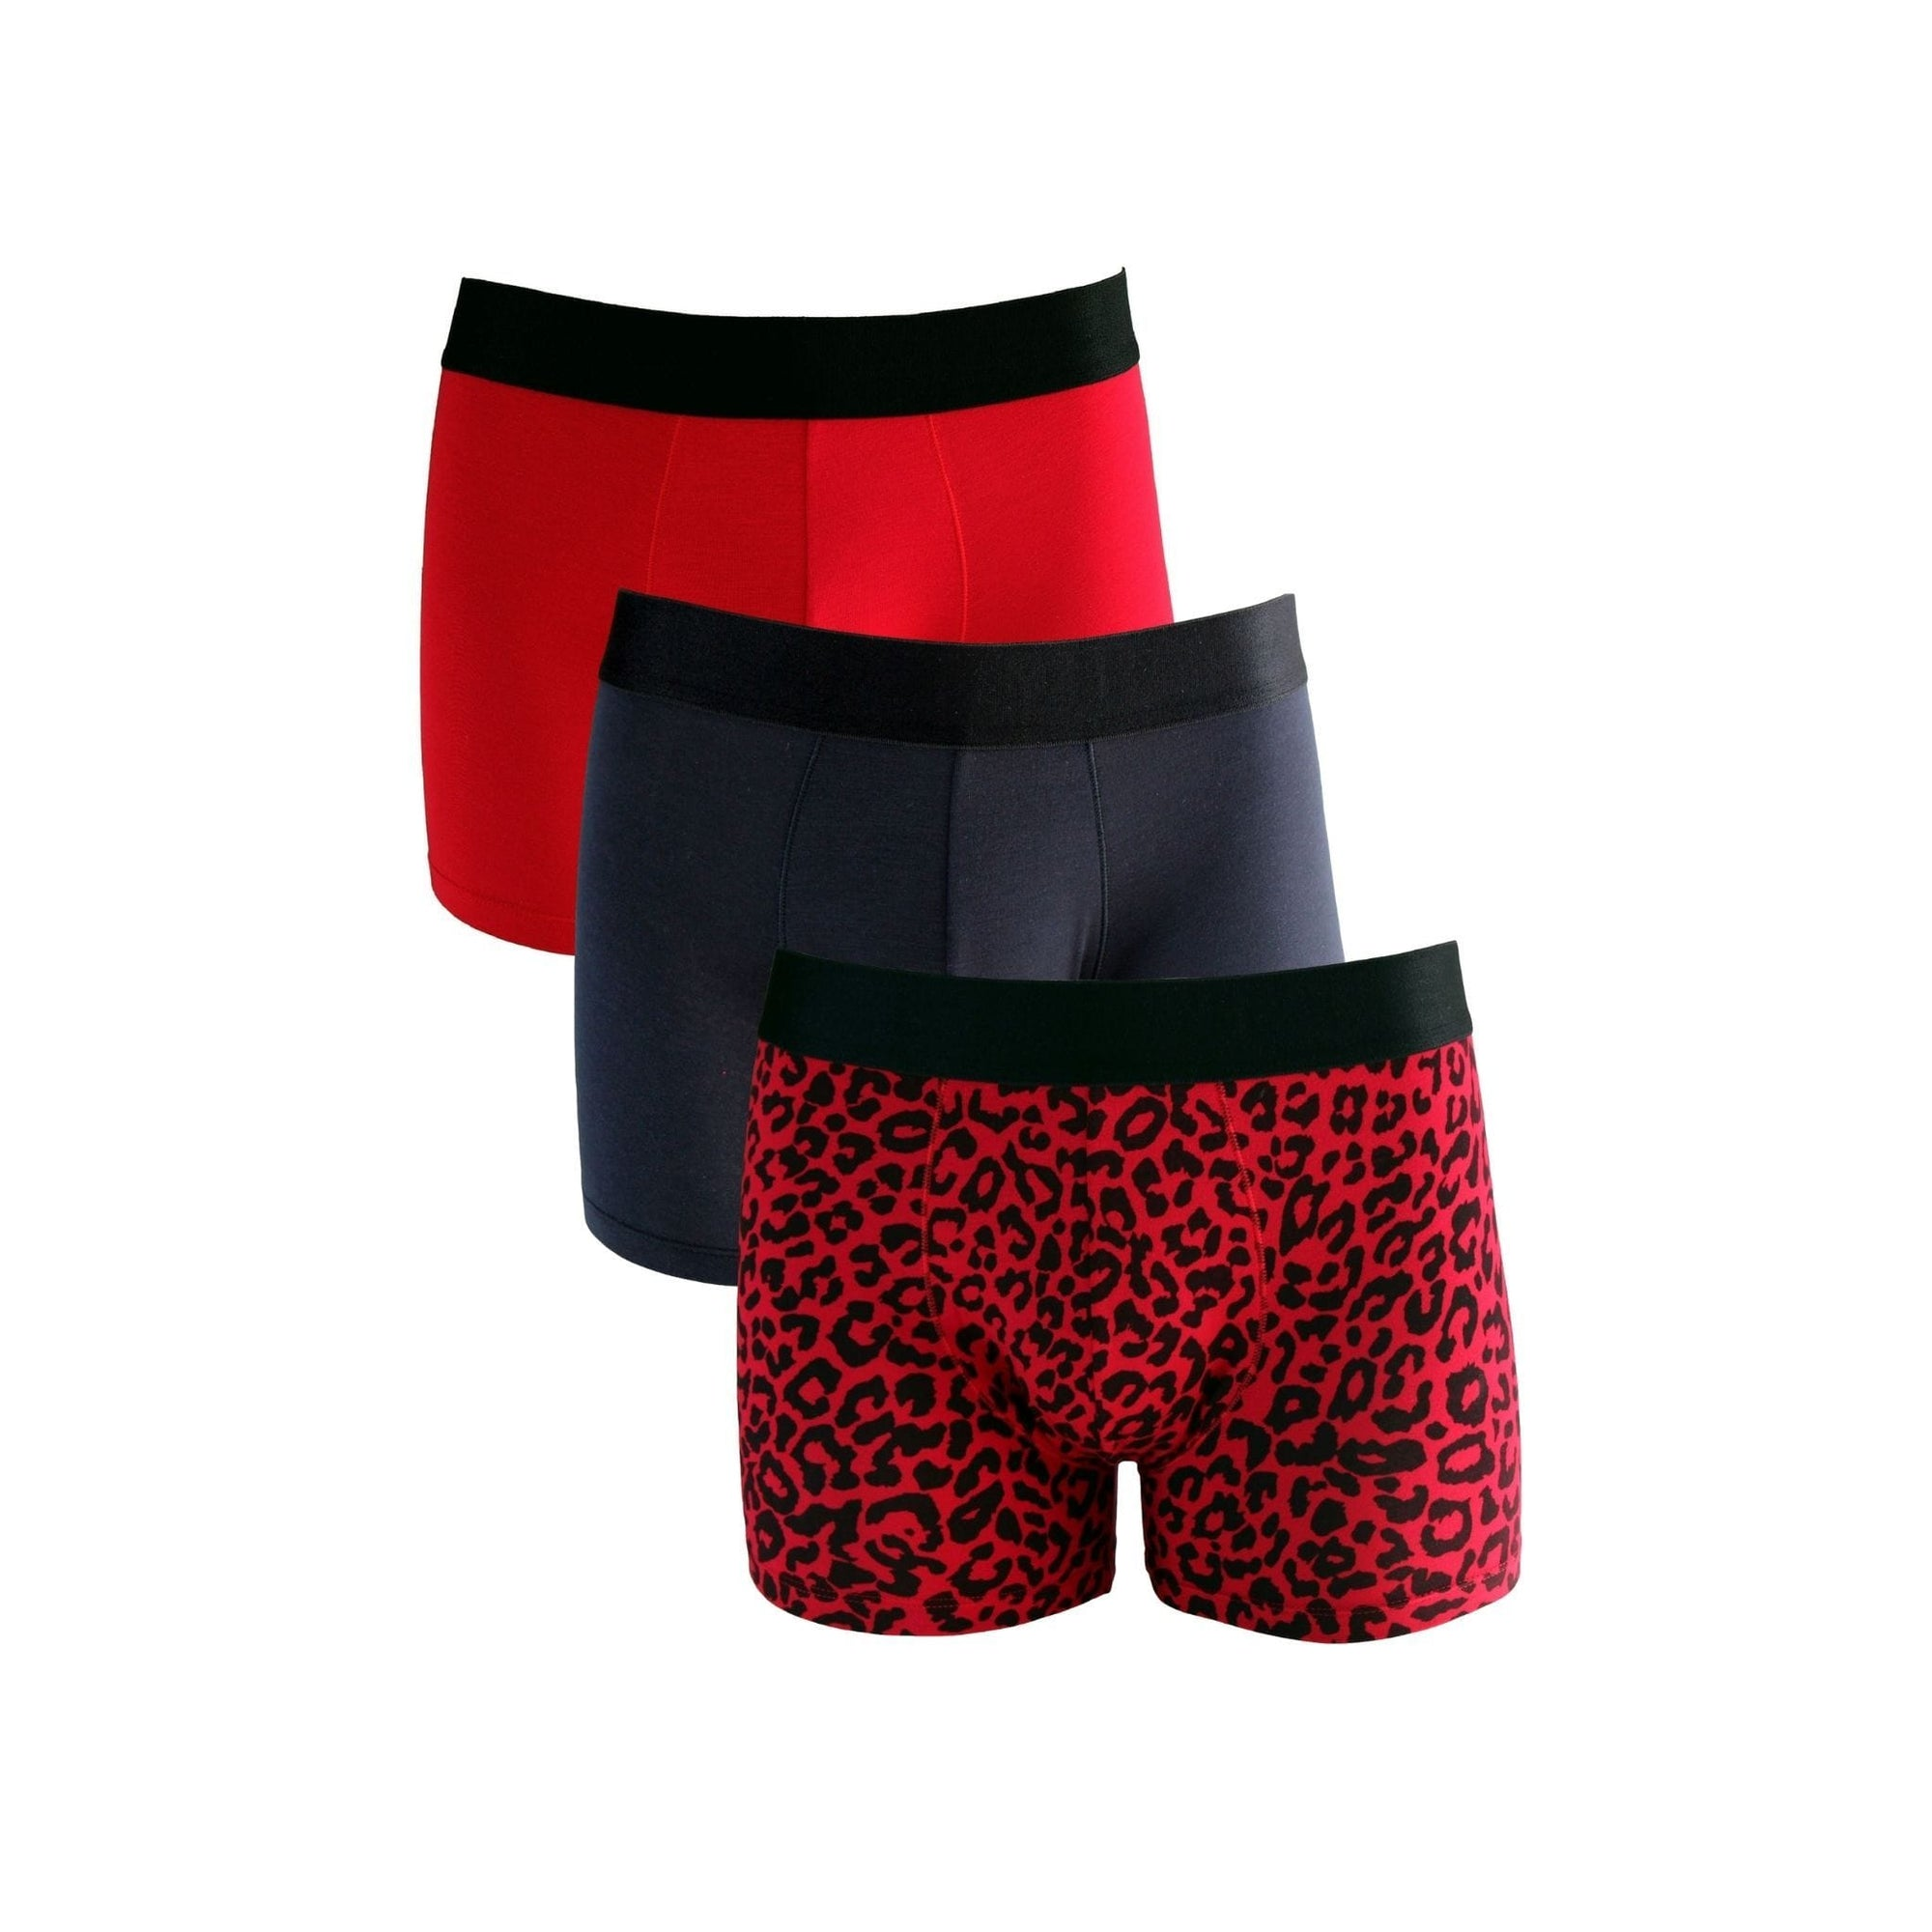 FANCIES Boxer Briefs Red Hot - Set of 3